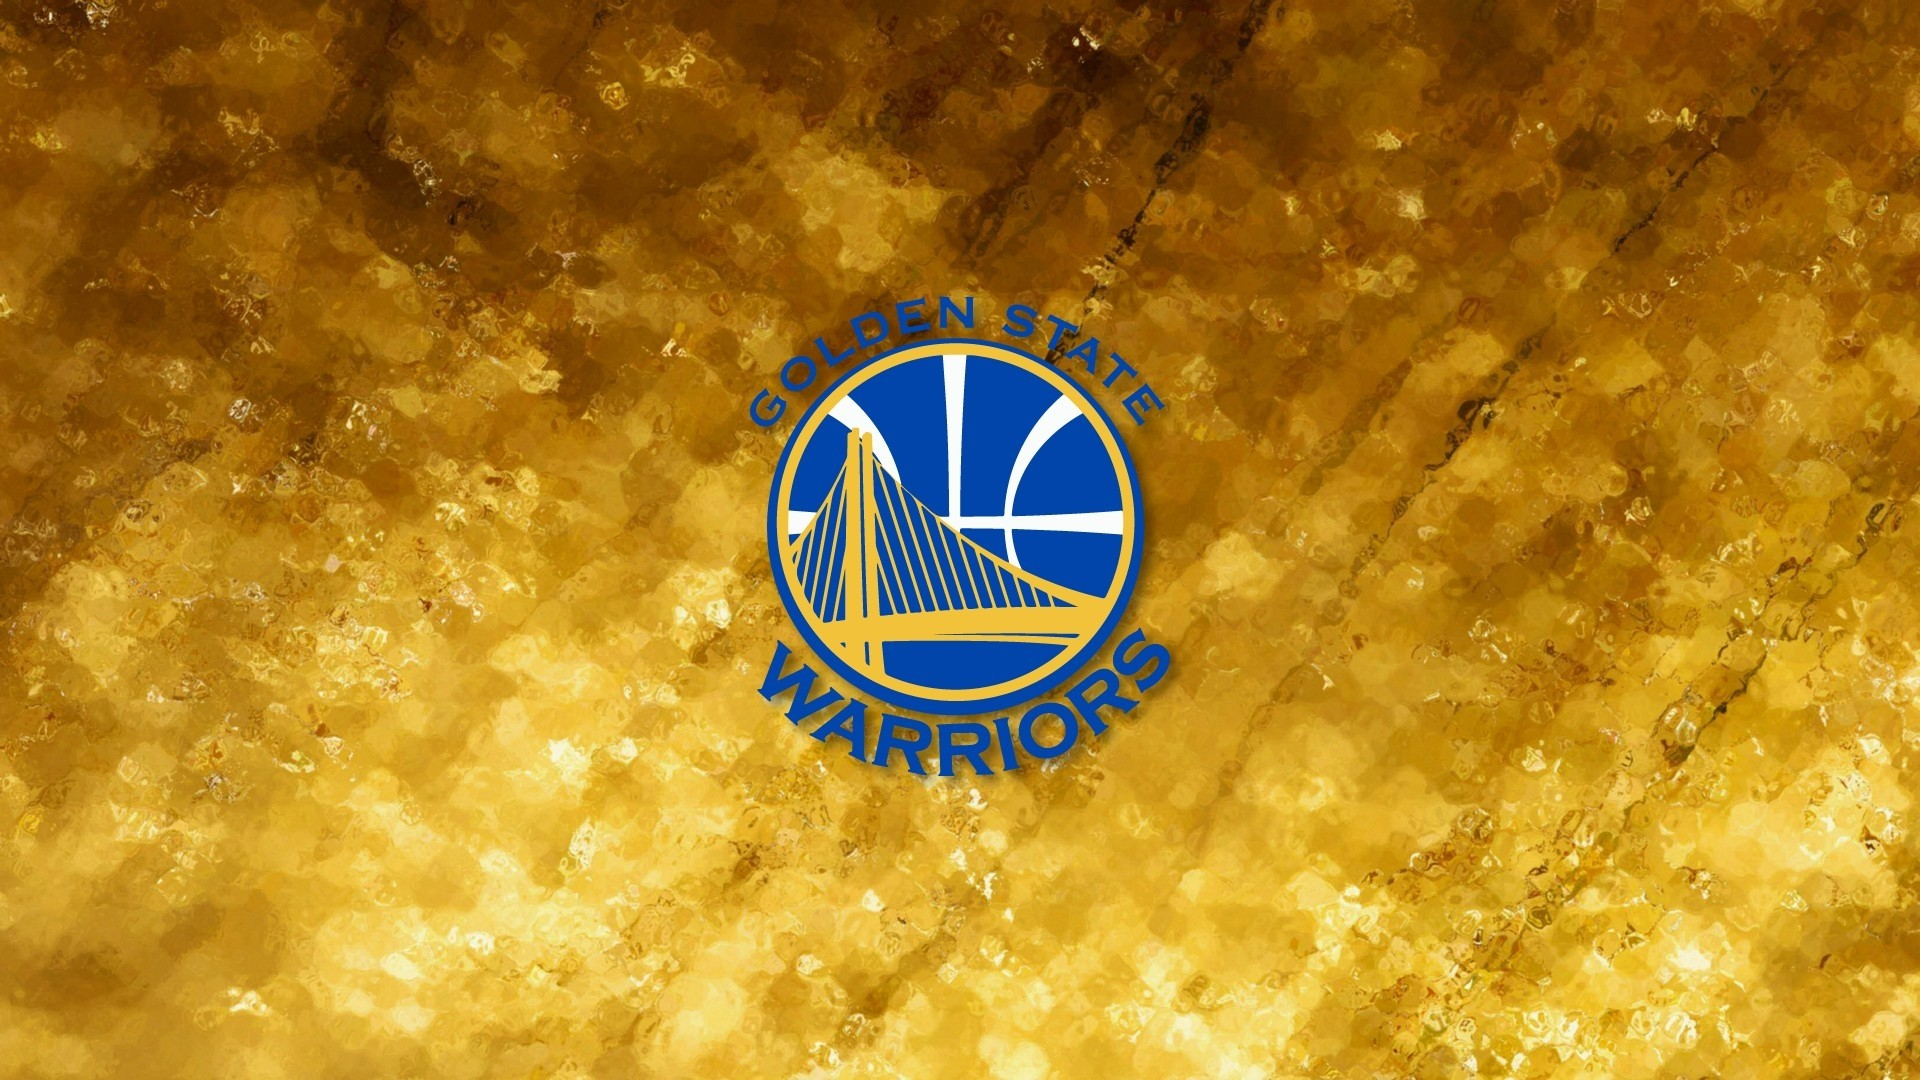 Golden State Warriors PC Wallpaper HD